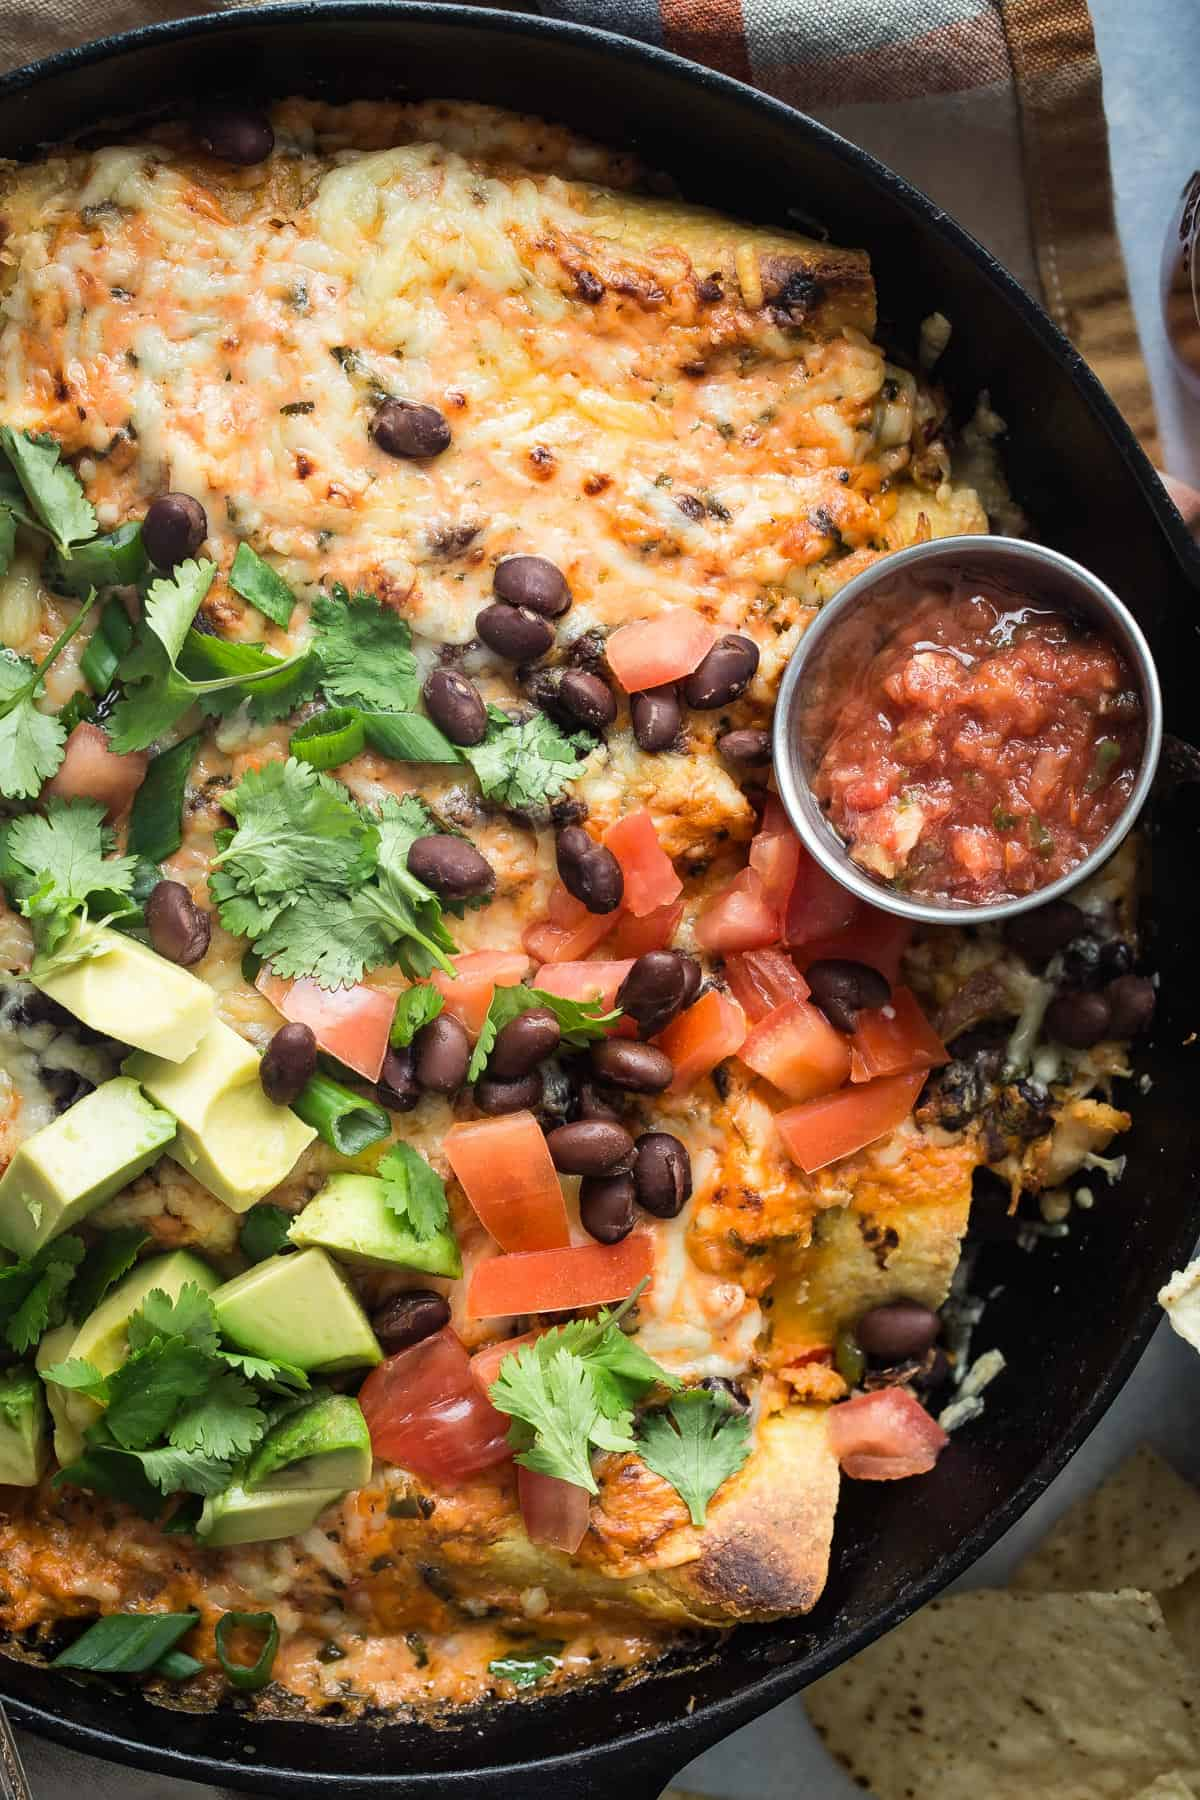 Easy Chicken enchiladas never looked so darn tasty, with beans and so much gooey cheese!